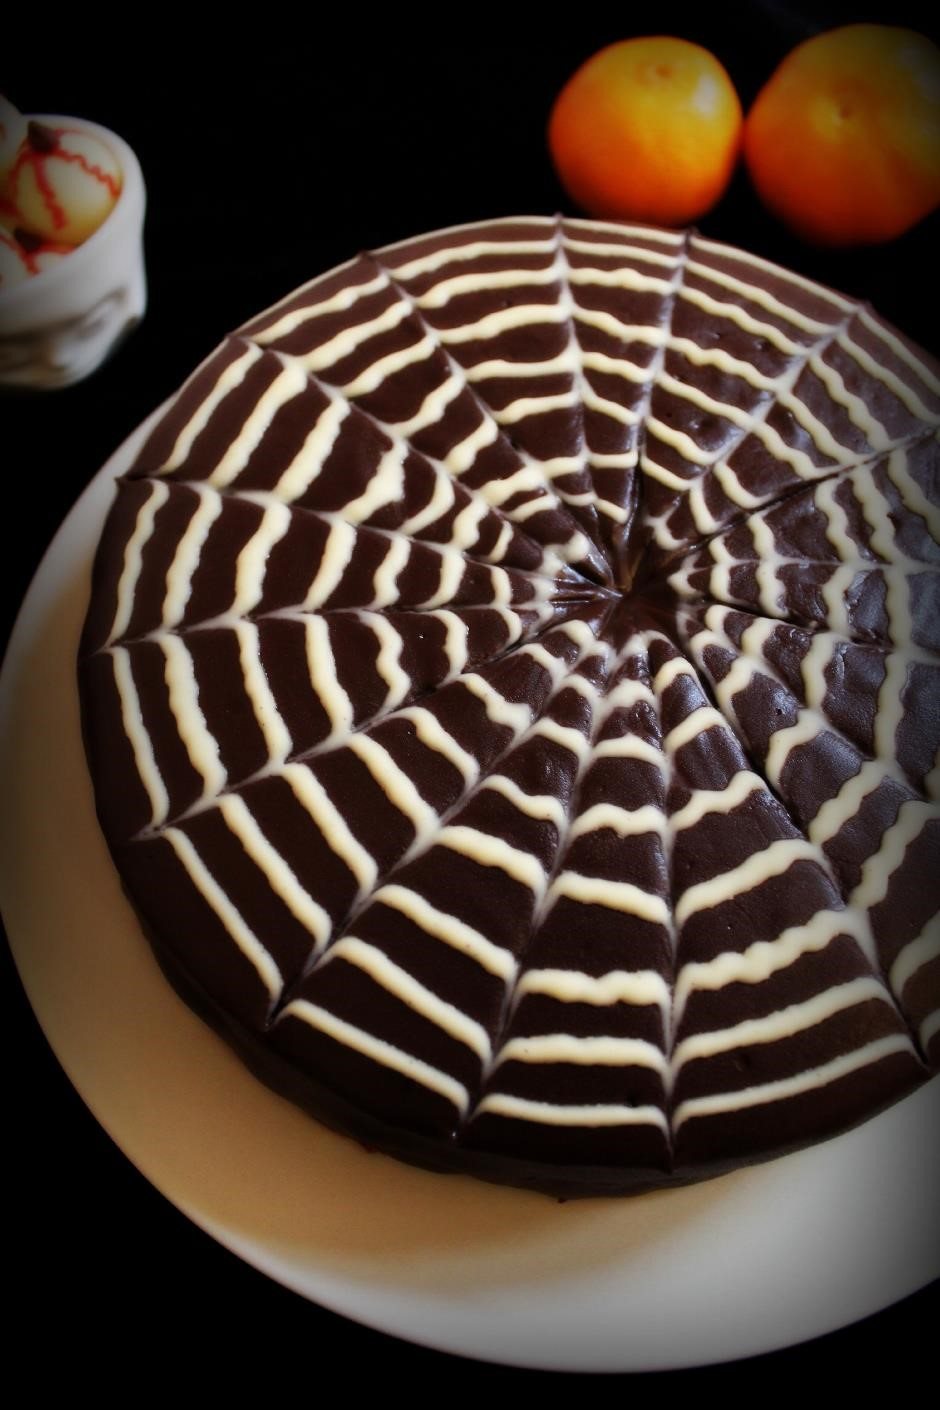 Cake Designs Website : Spider web cake - The Confetti Journal